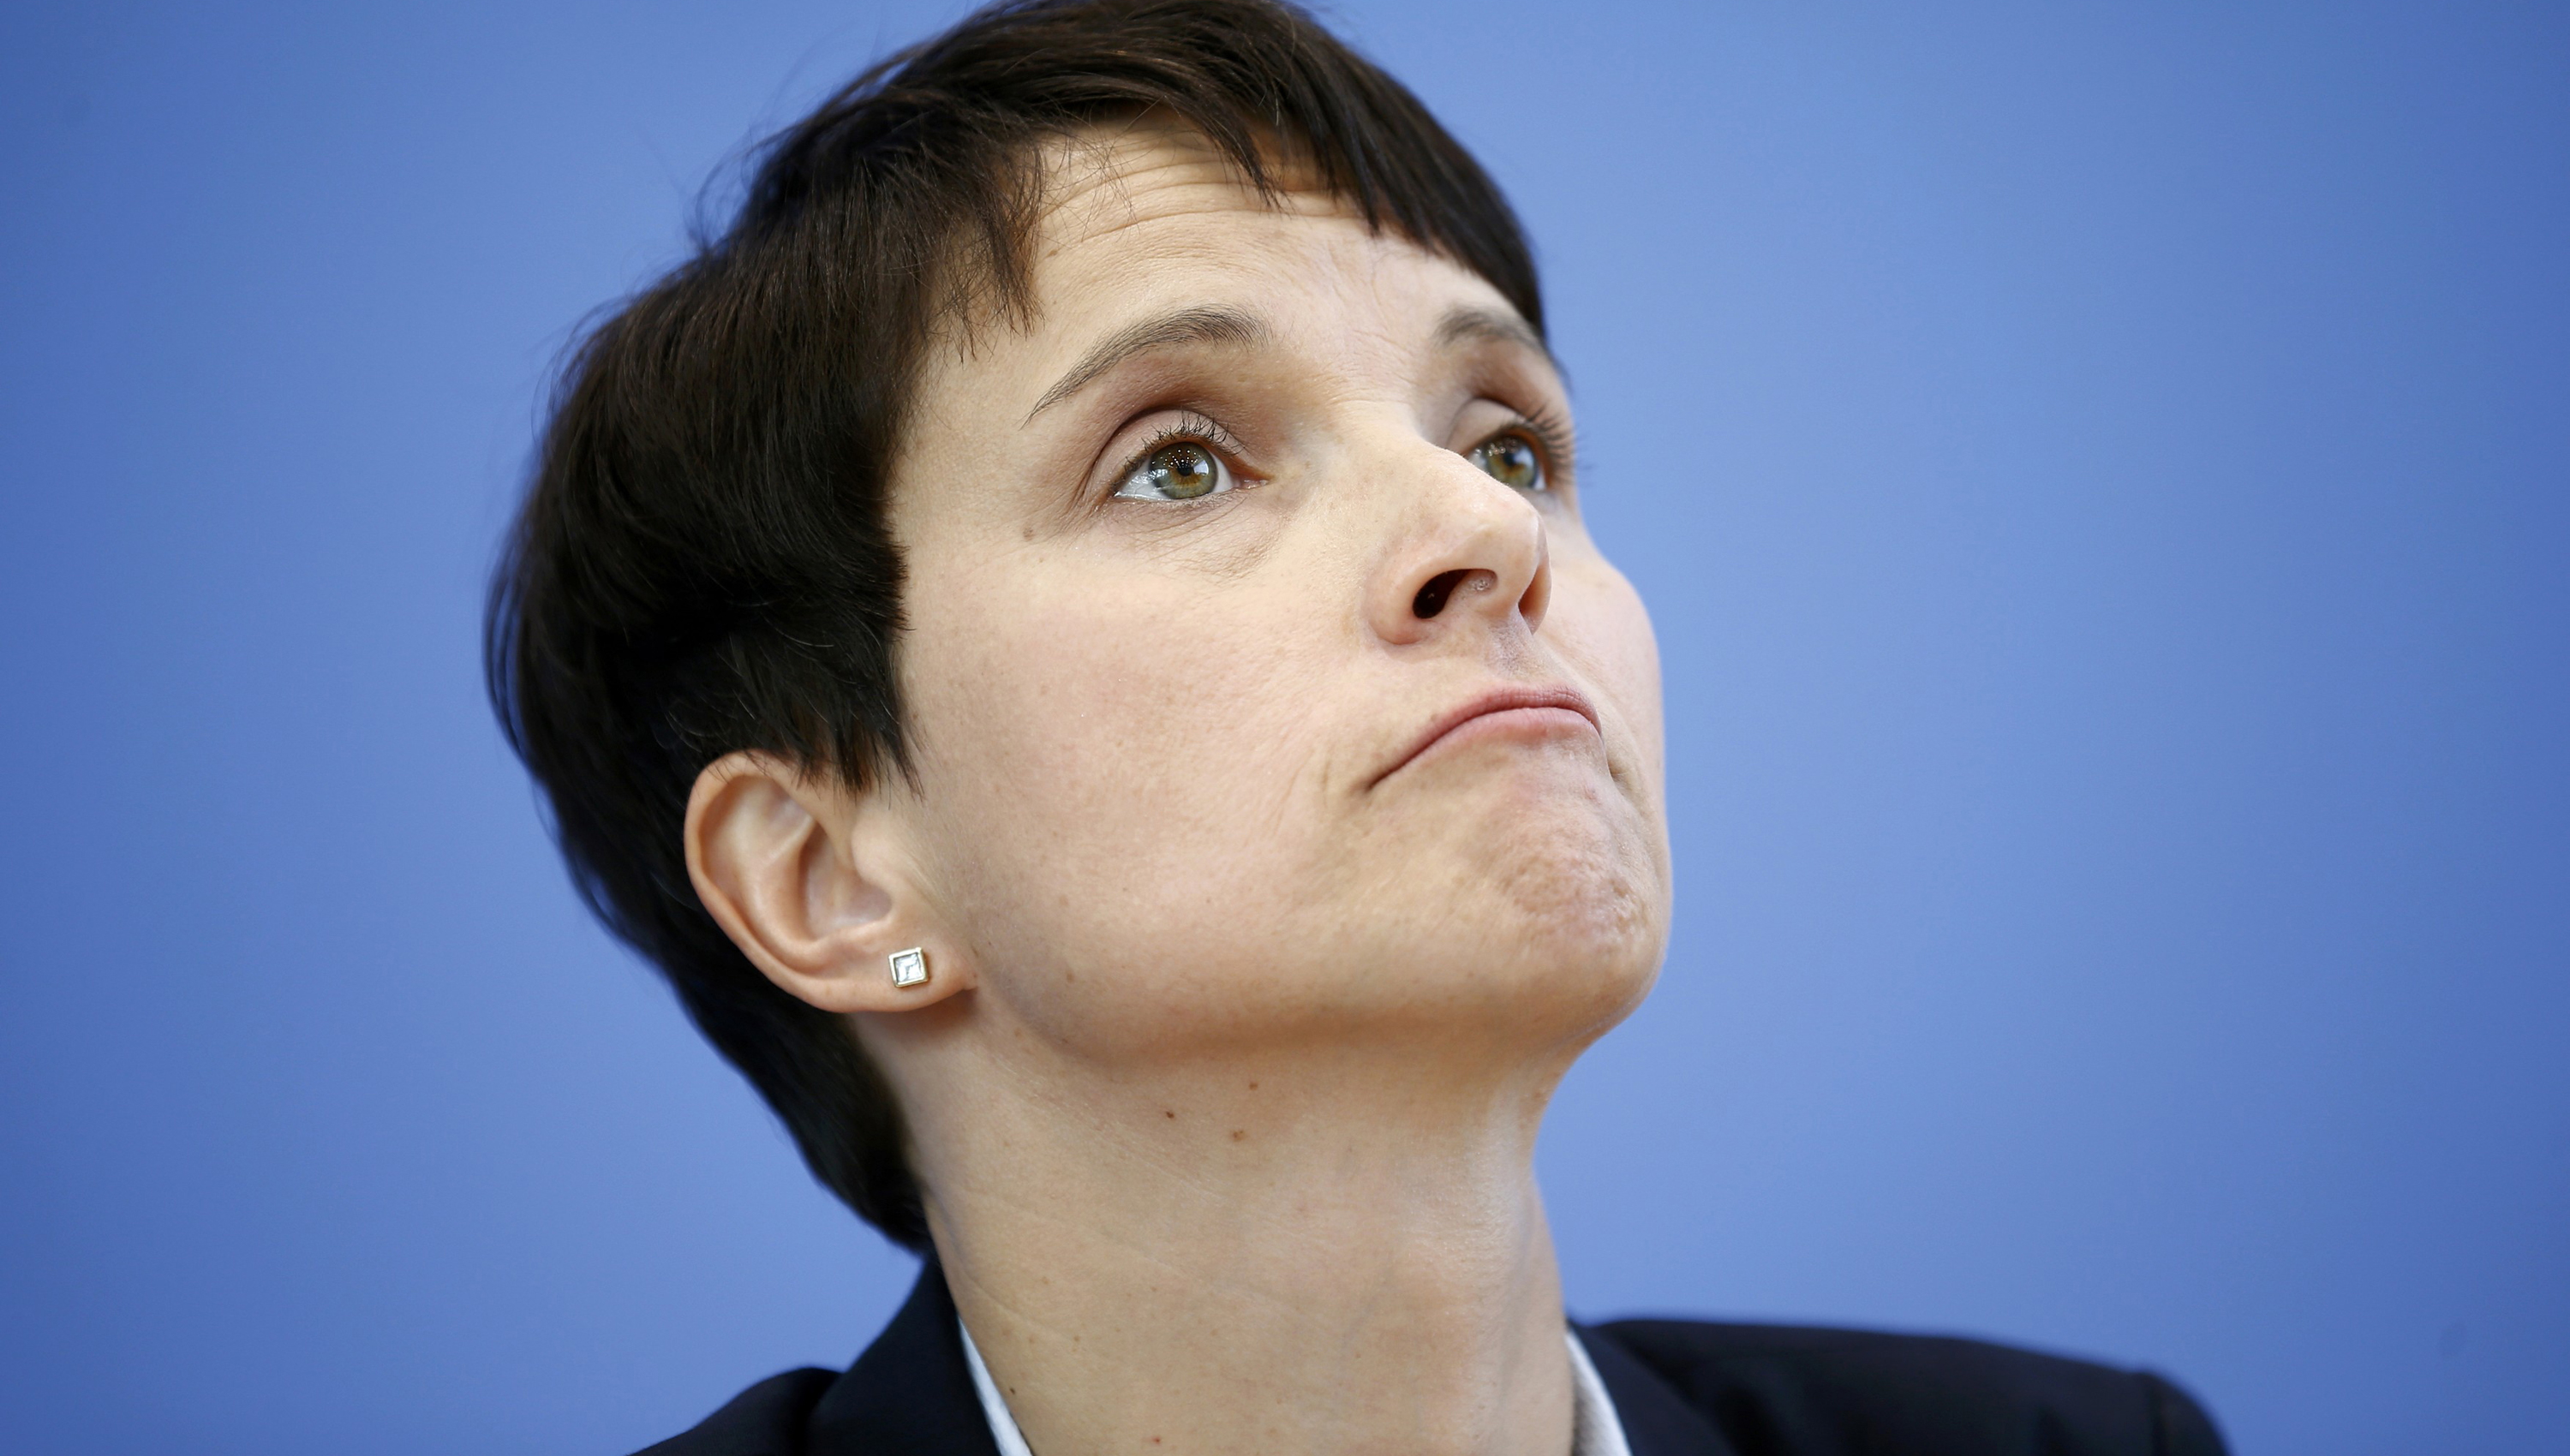 Frauke Petry, lideresa del ultraderechista Alternativa para Alemania (AfD).